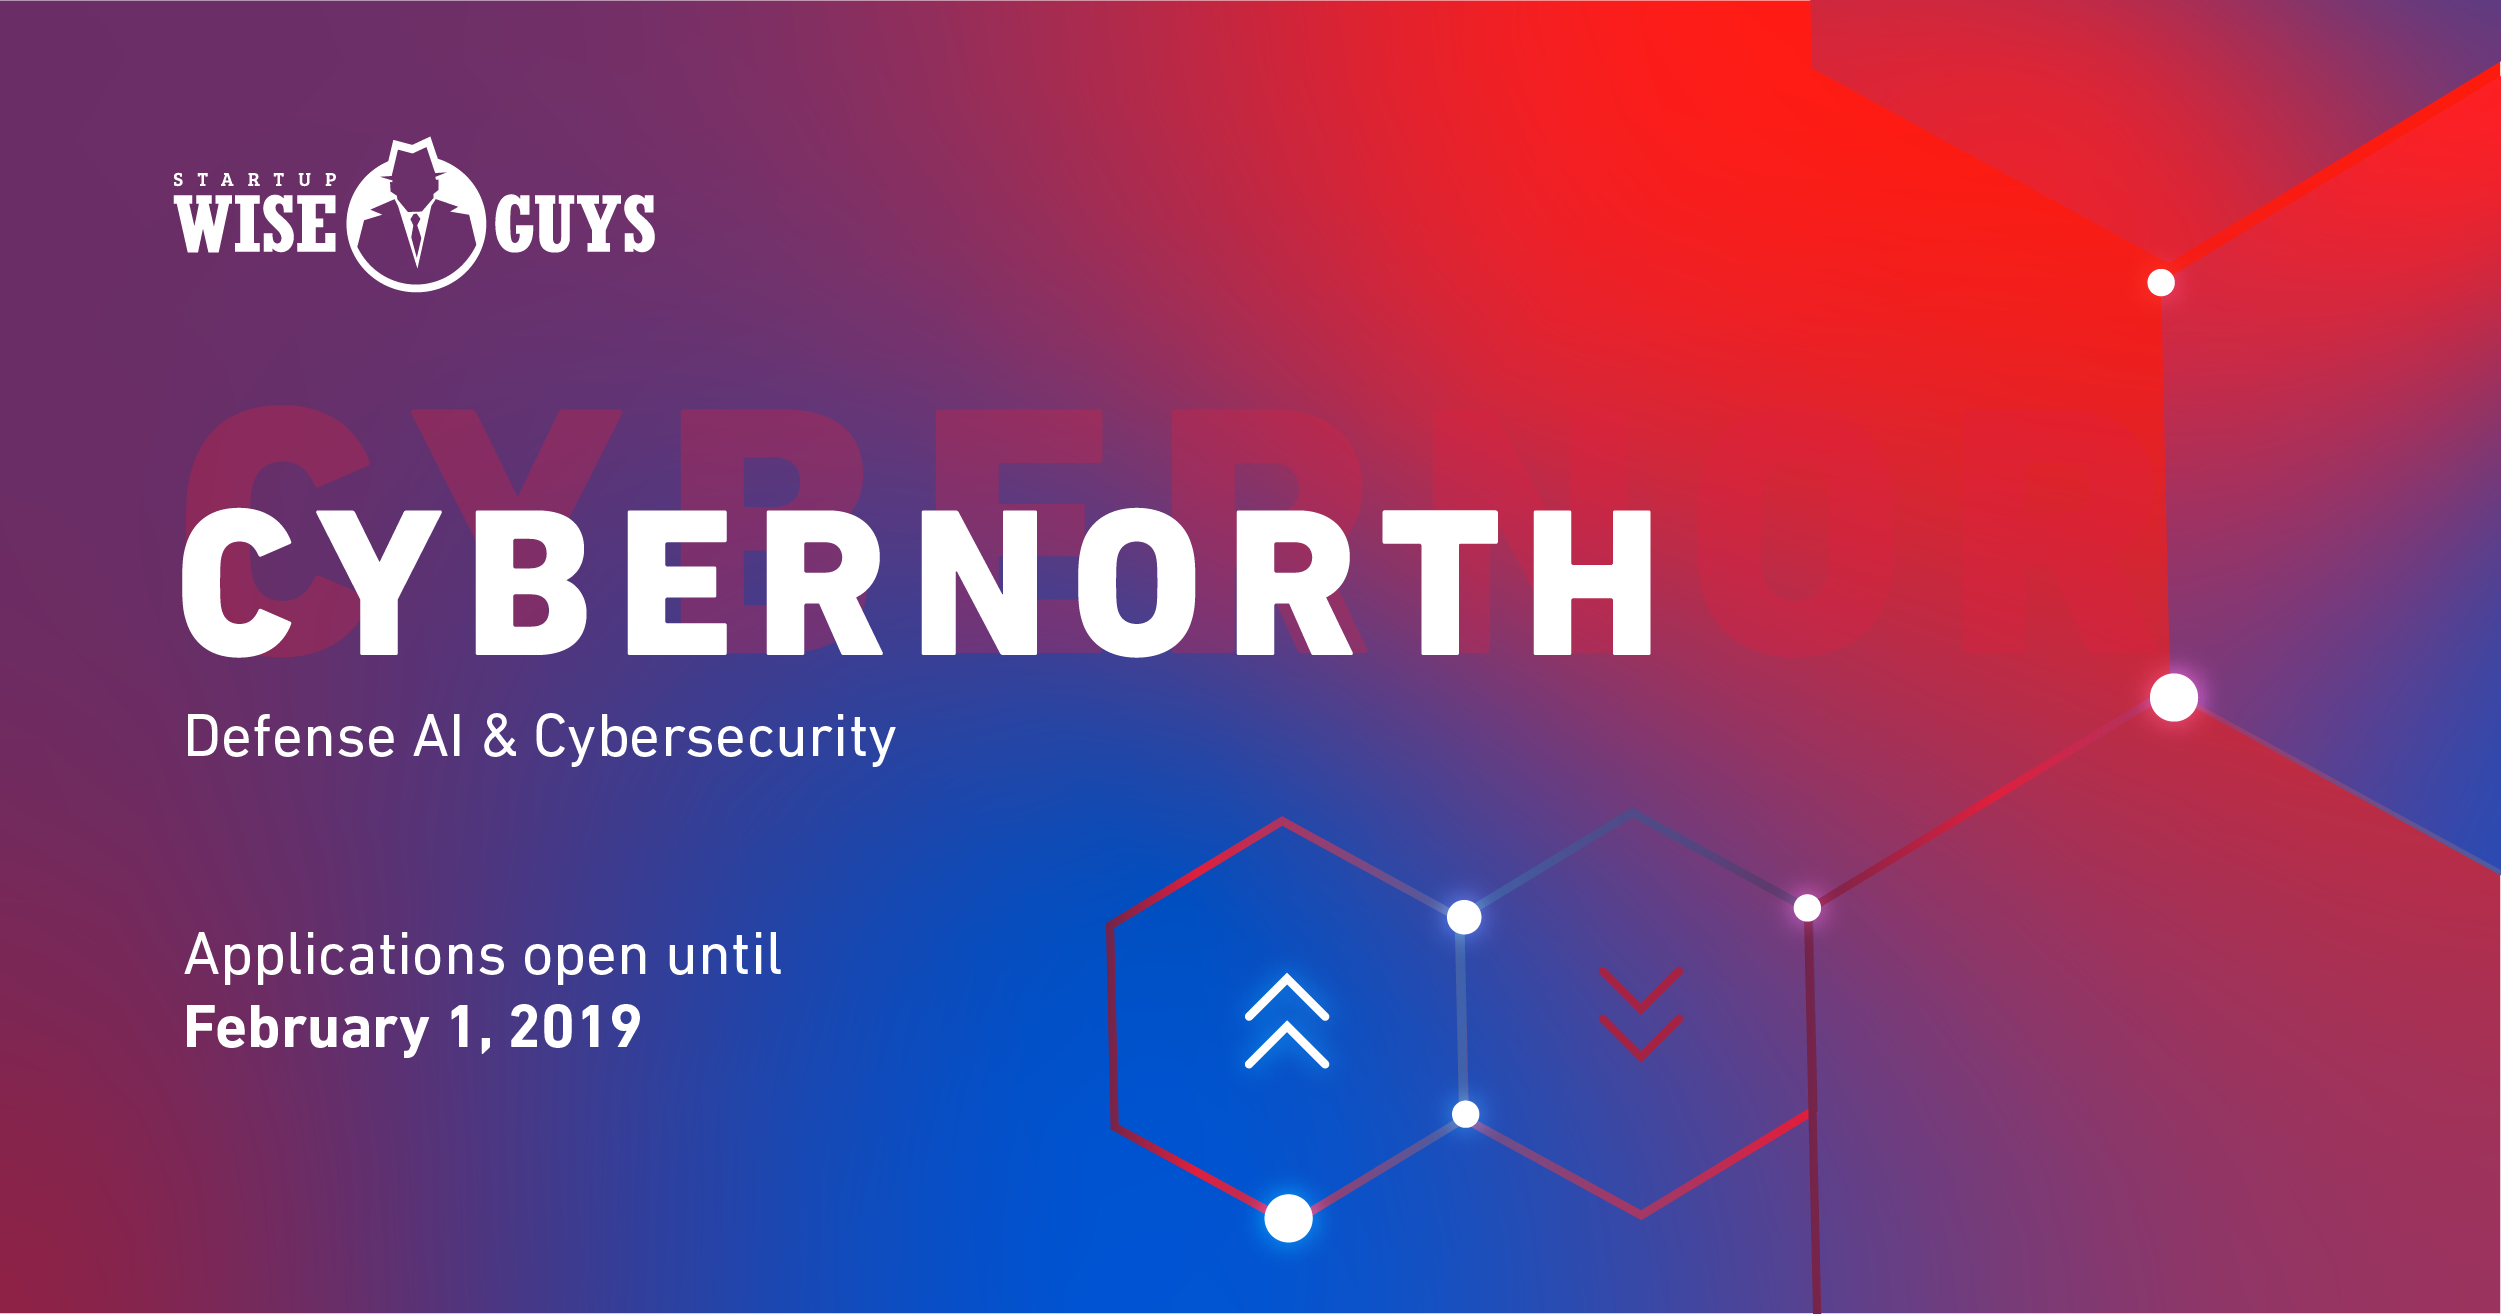 Estonia to host the first European Defense AI and cybersecurity accelerator